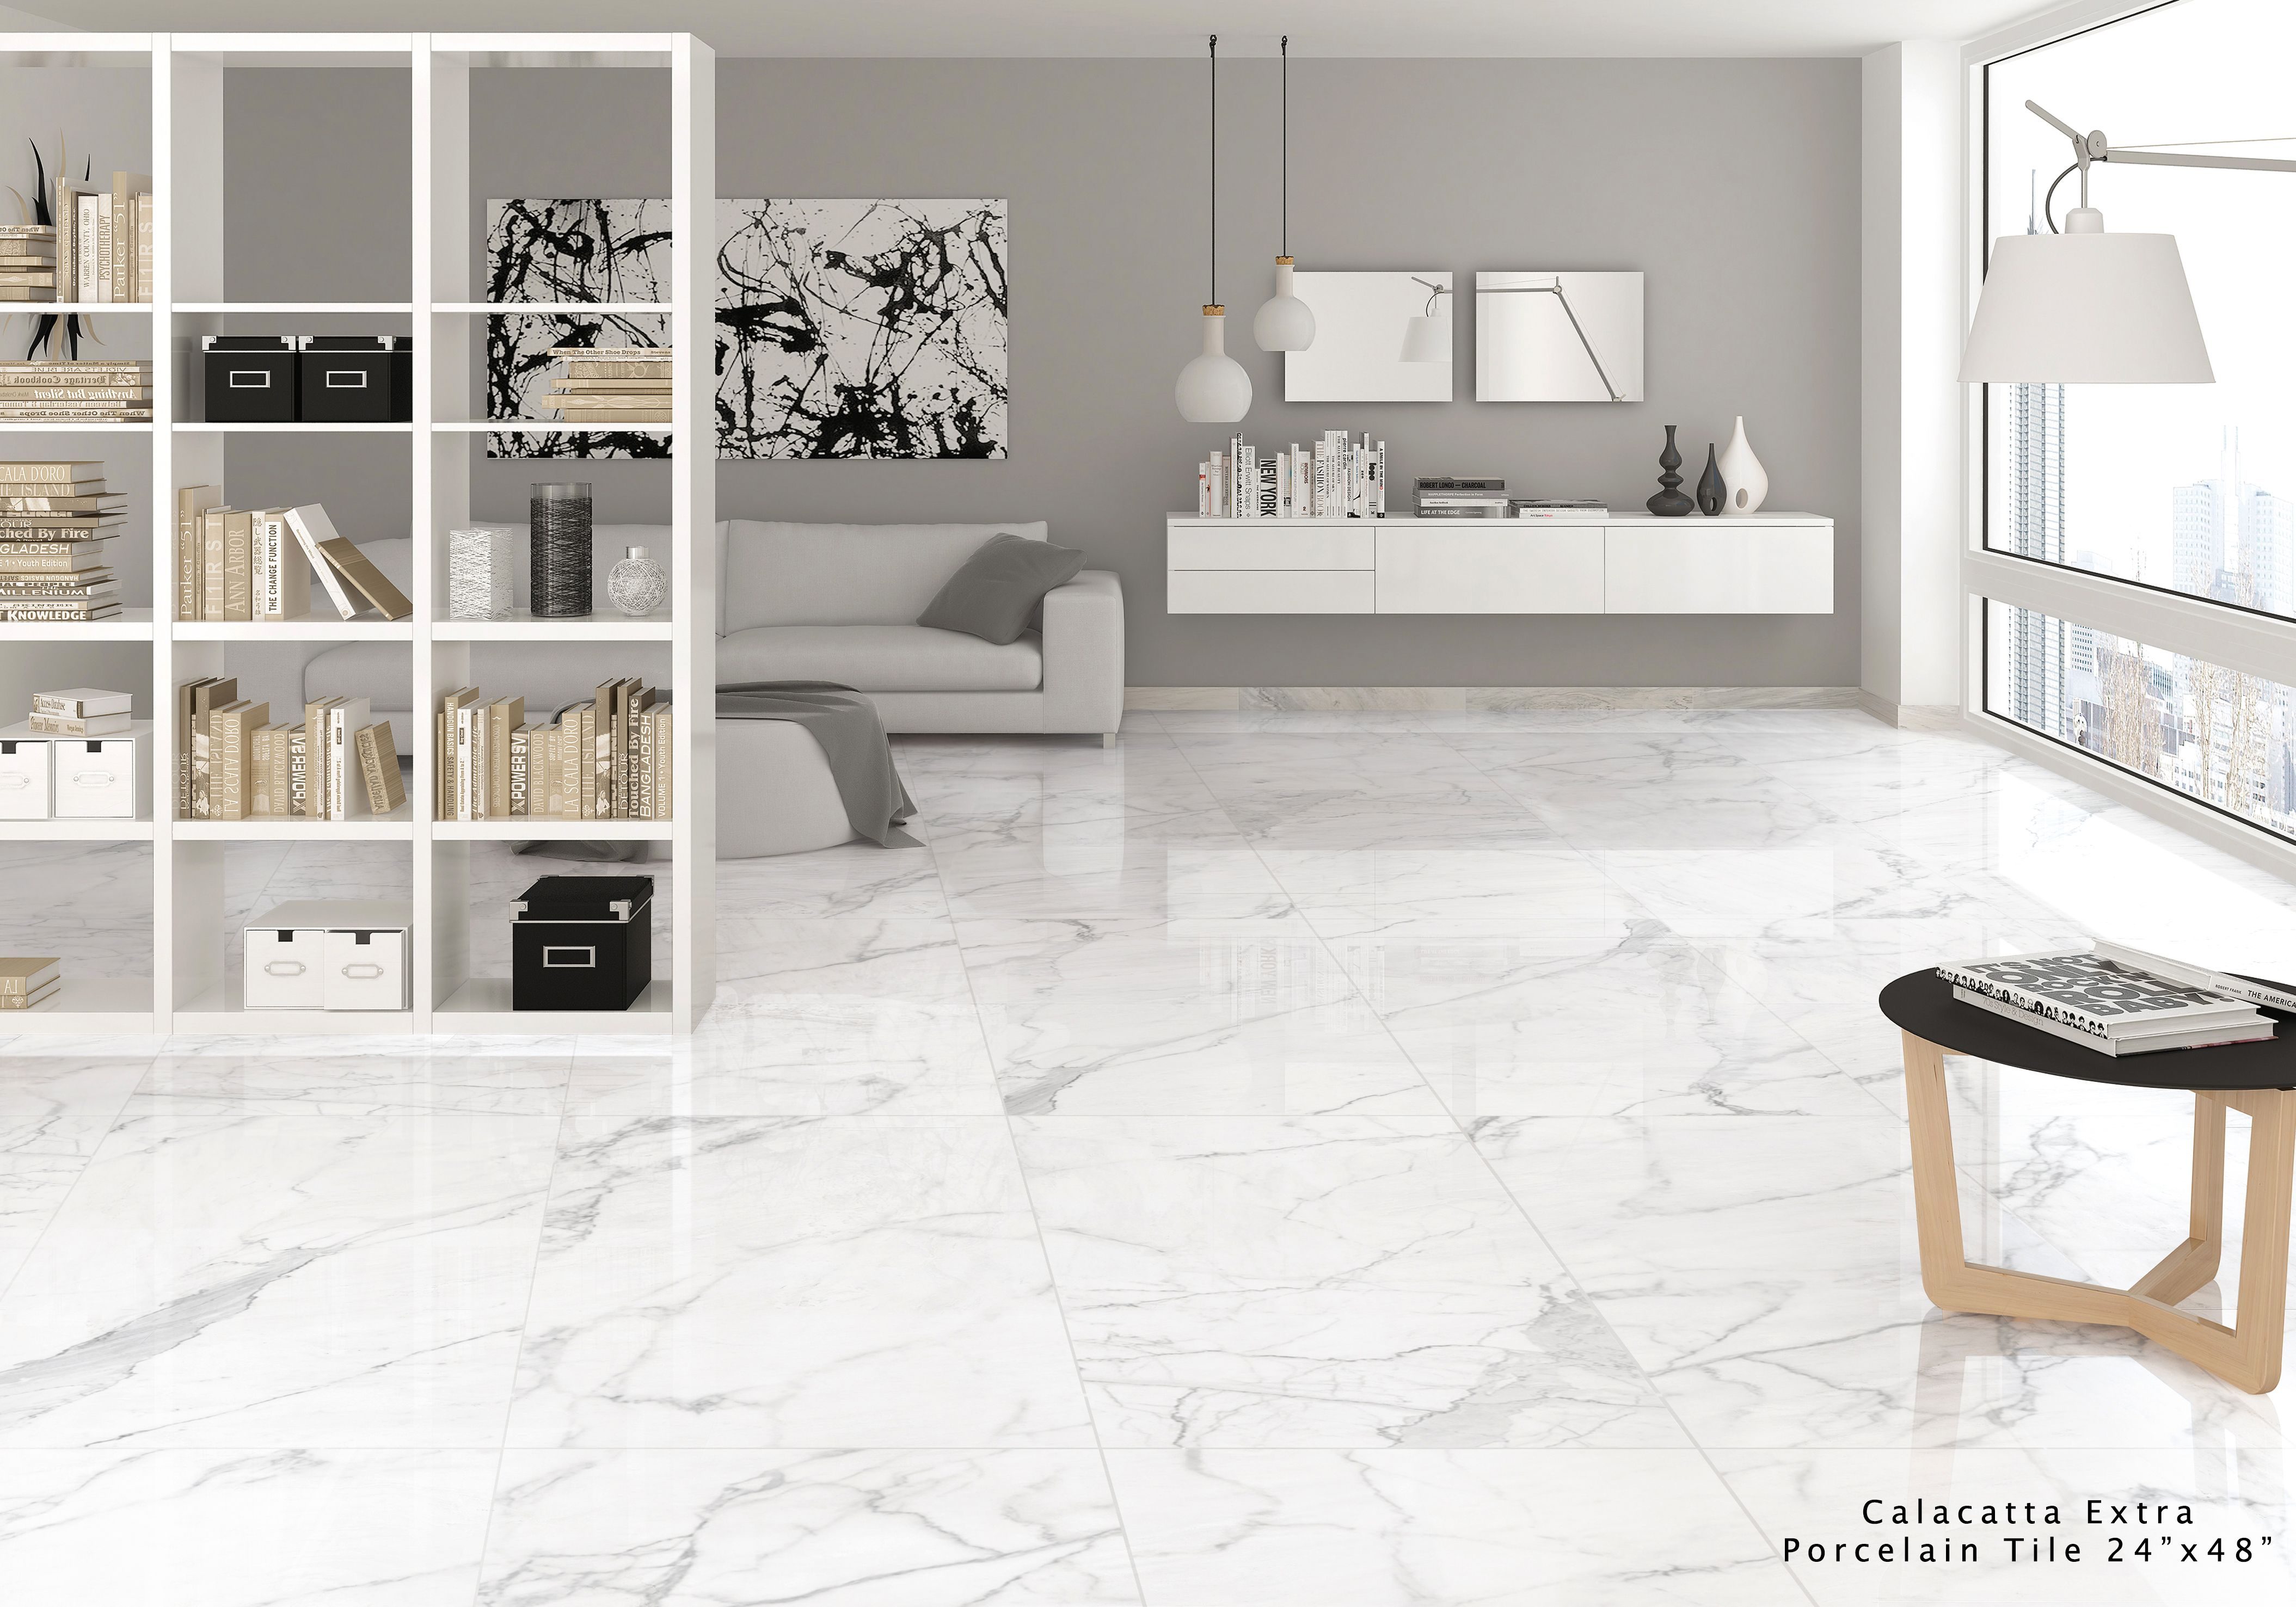 Calacatta Extra Marble Effect White Porcelain Tiles The Surprising Shine Of The Materials Enhances The Pr Indoor Tile Floor Tile Design Porcelain Floor Tiles #porcelain #floor #tiles #for #living #room